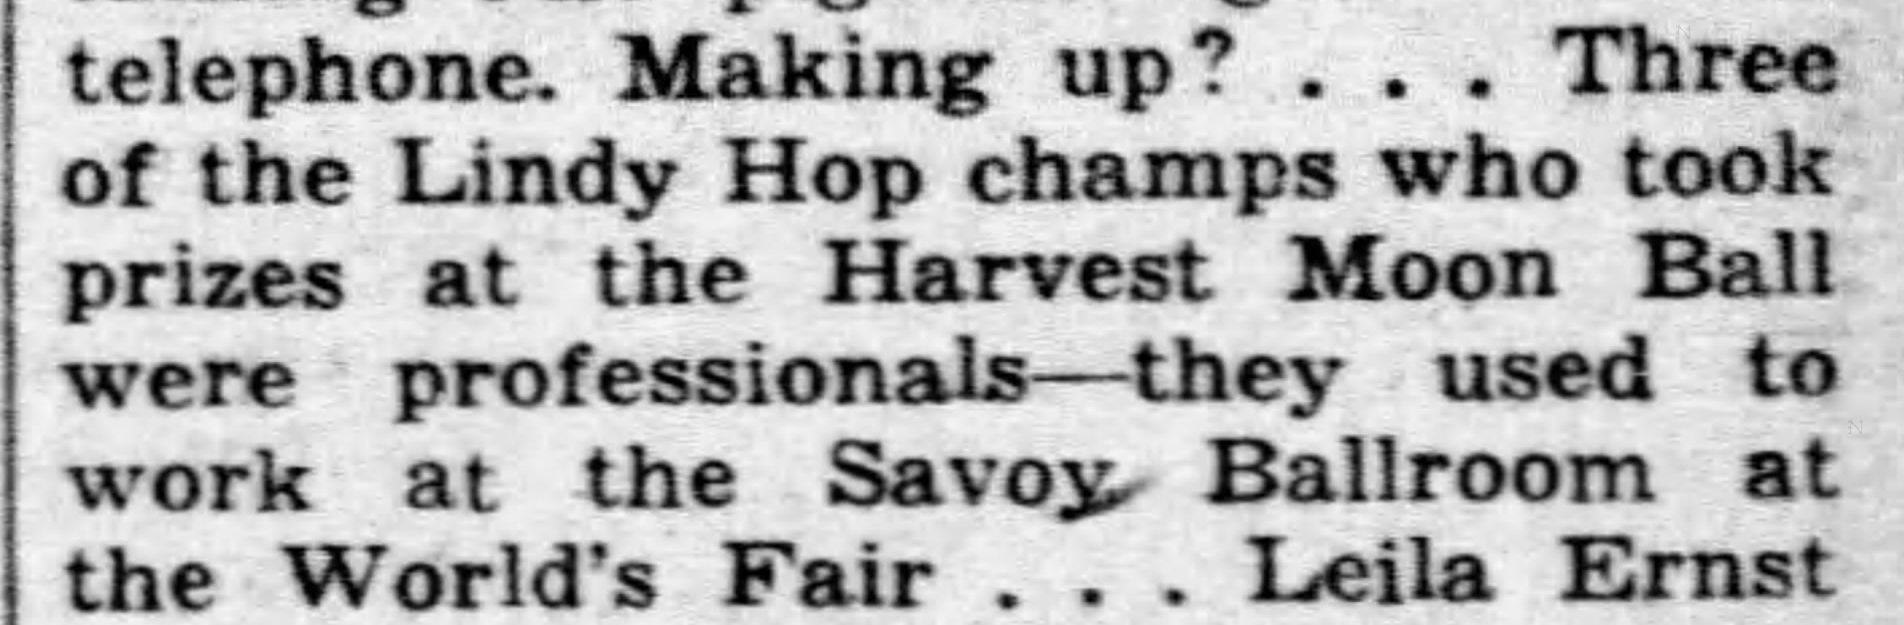 1940 Broadway column discovery lindy hop winners were PROS The_Miami_News_Fri__Sep_13__1940_